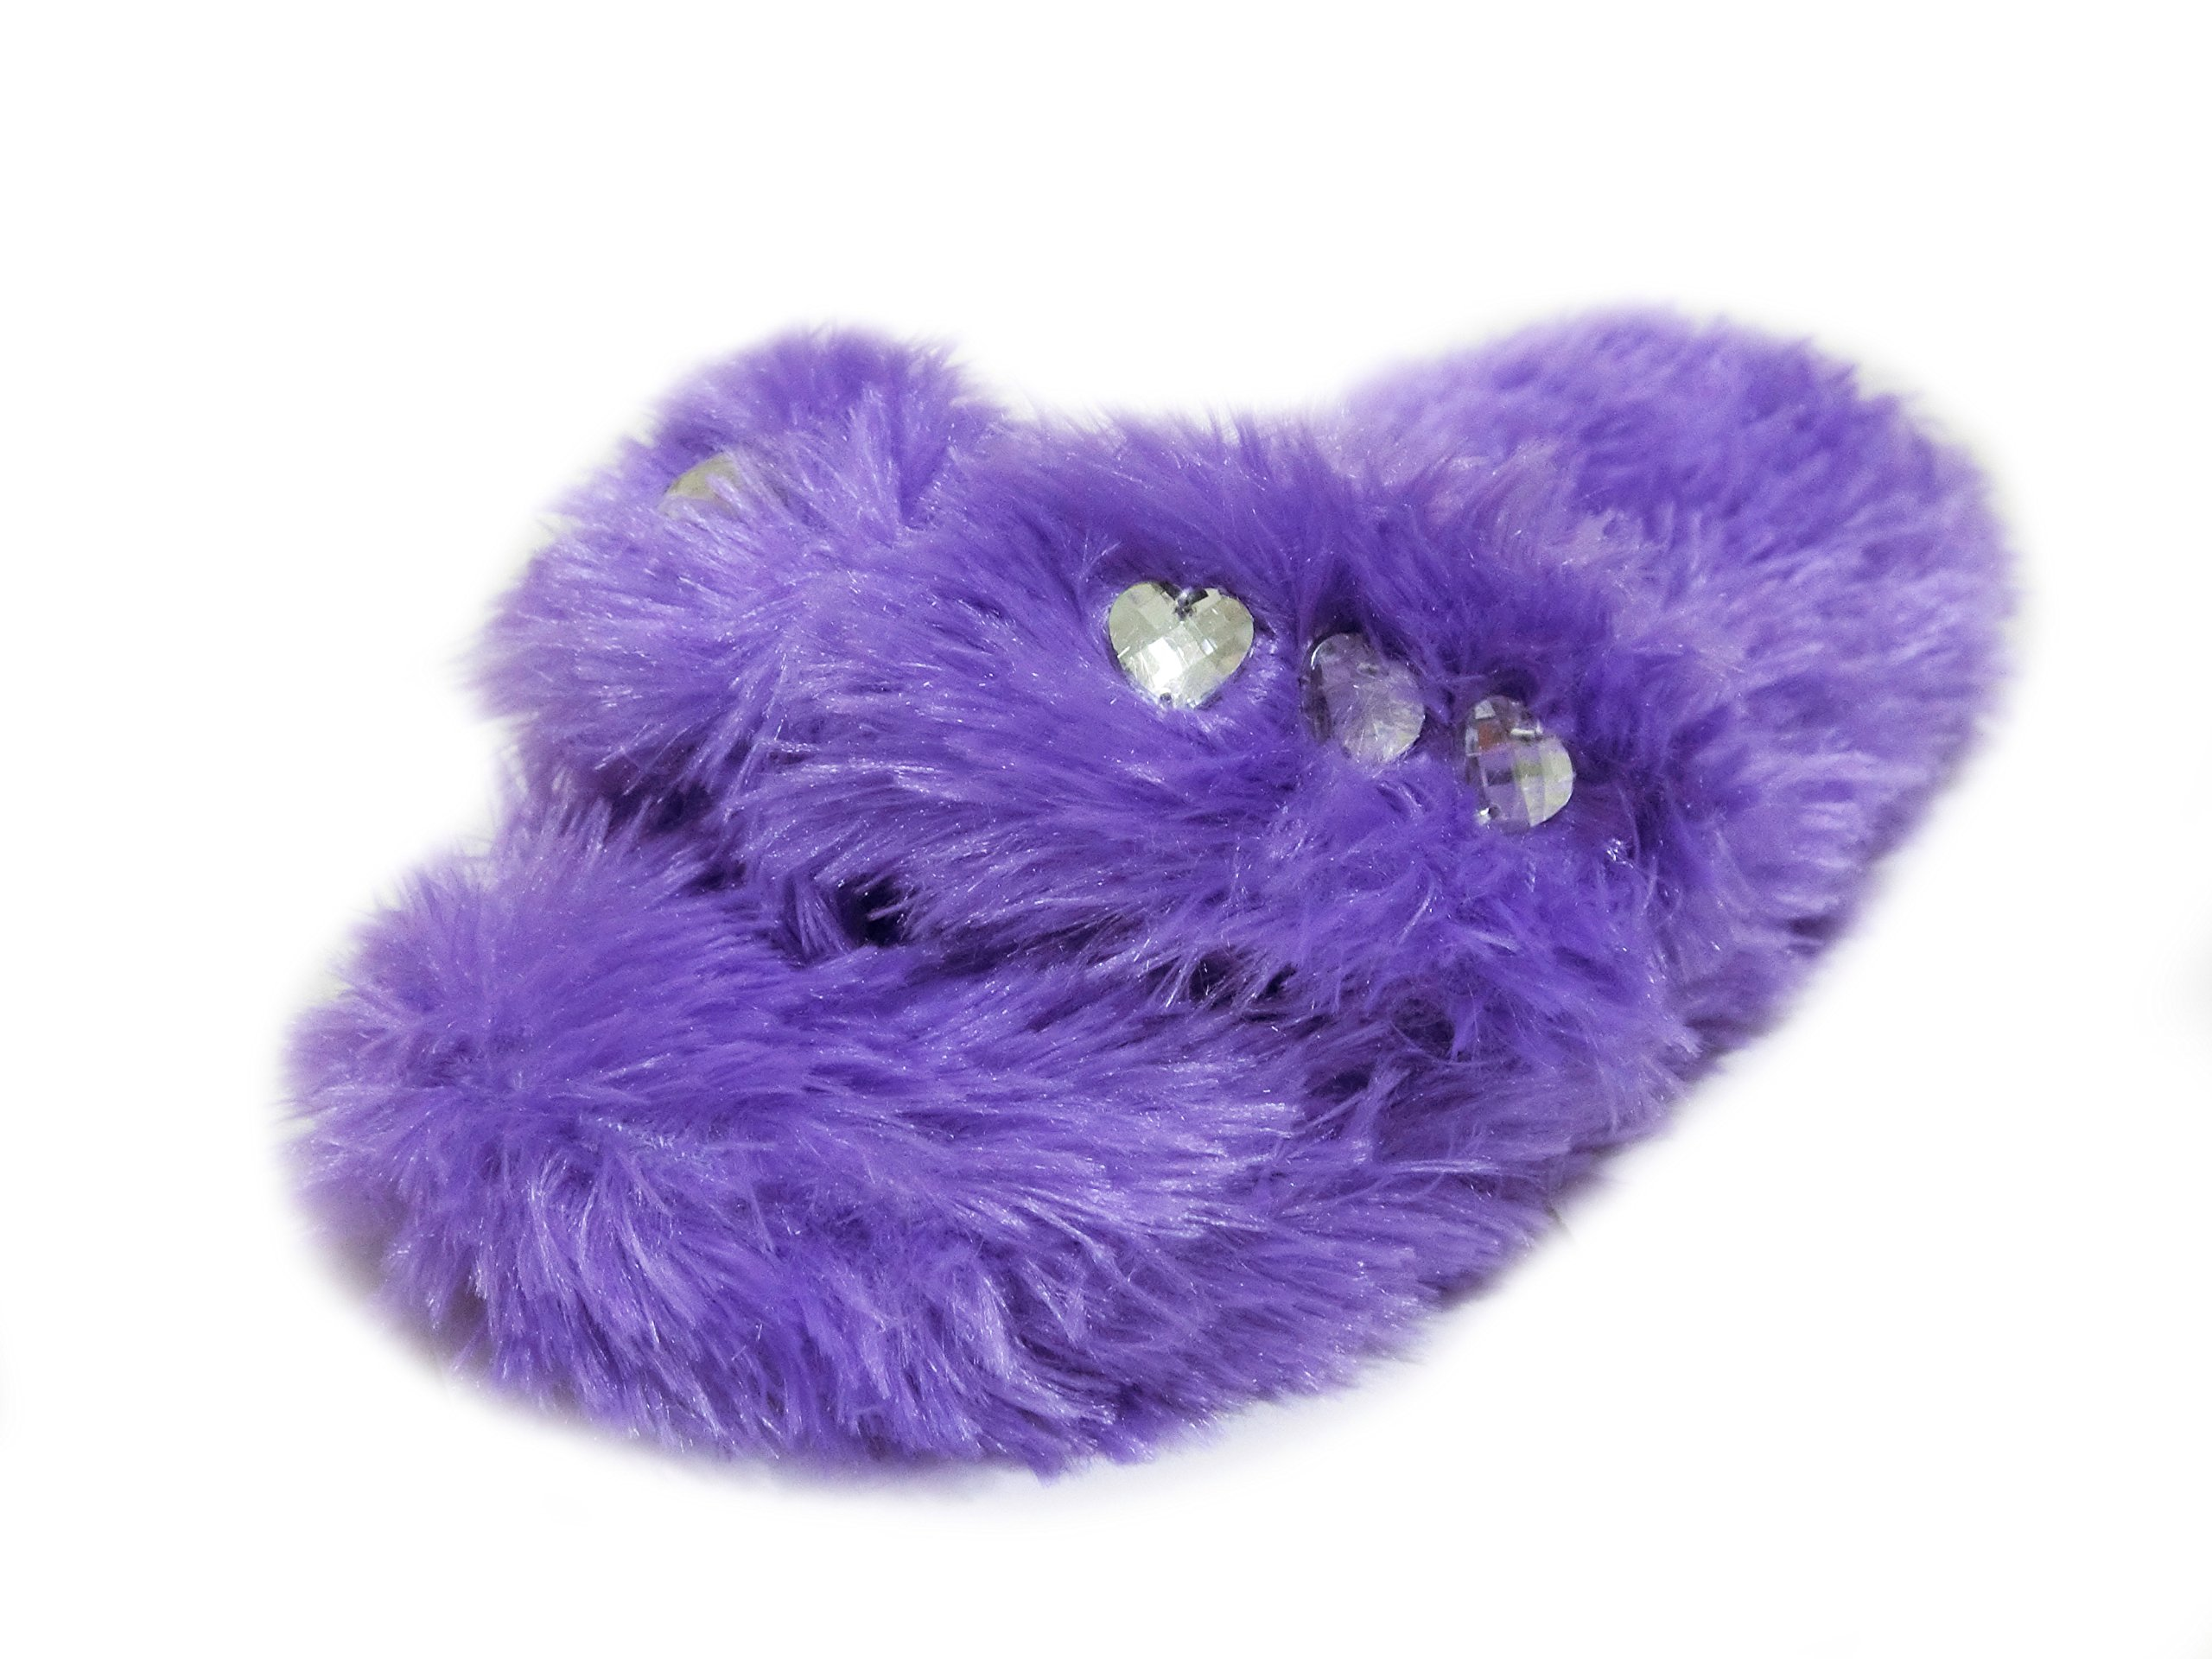 Onmygogo Girl's Bejeweled Flip Flops, Little Kid Fuzzy Indoor Princess Slippers, 3 Sizes (M-US Little Kid Size 12.5-1, Purple)